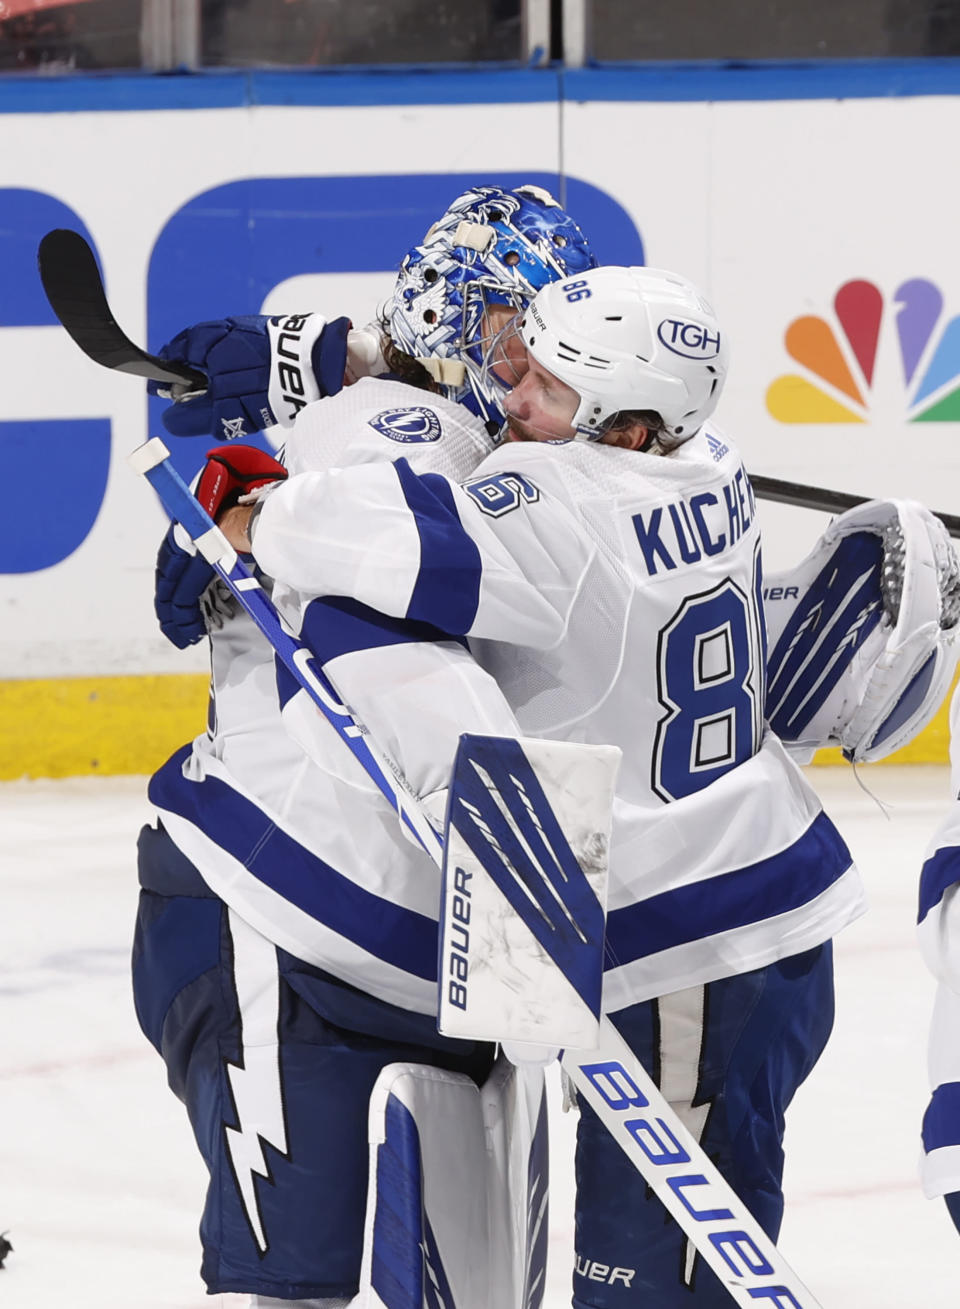 Tampa Bay Lightning goaltender Andrei Vasilevskiy (88) celebrates the win with Tampa Bay Lightning right wing Nikita Kucherov (86) against the Florida Panthers after the third period in Game 1 of an NHL hockey Stanley Cup first-round playoff series, Sunday, May 16, 2021, in Sunrise, Fla. (AP Photo/Joel Auerbach)